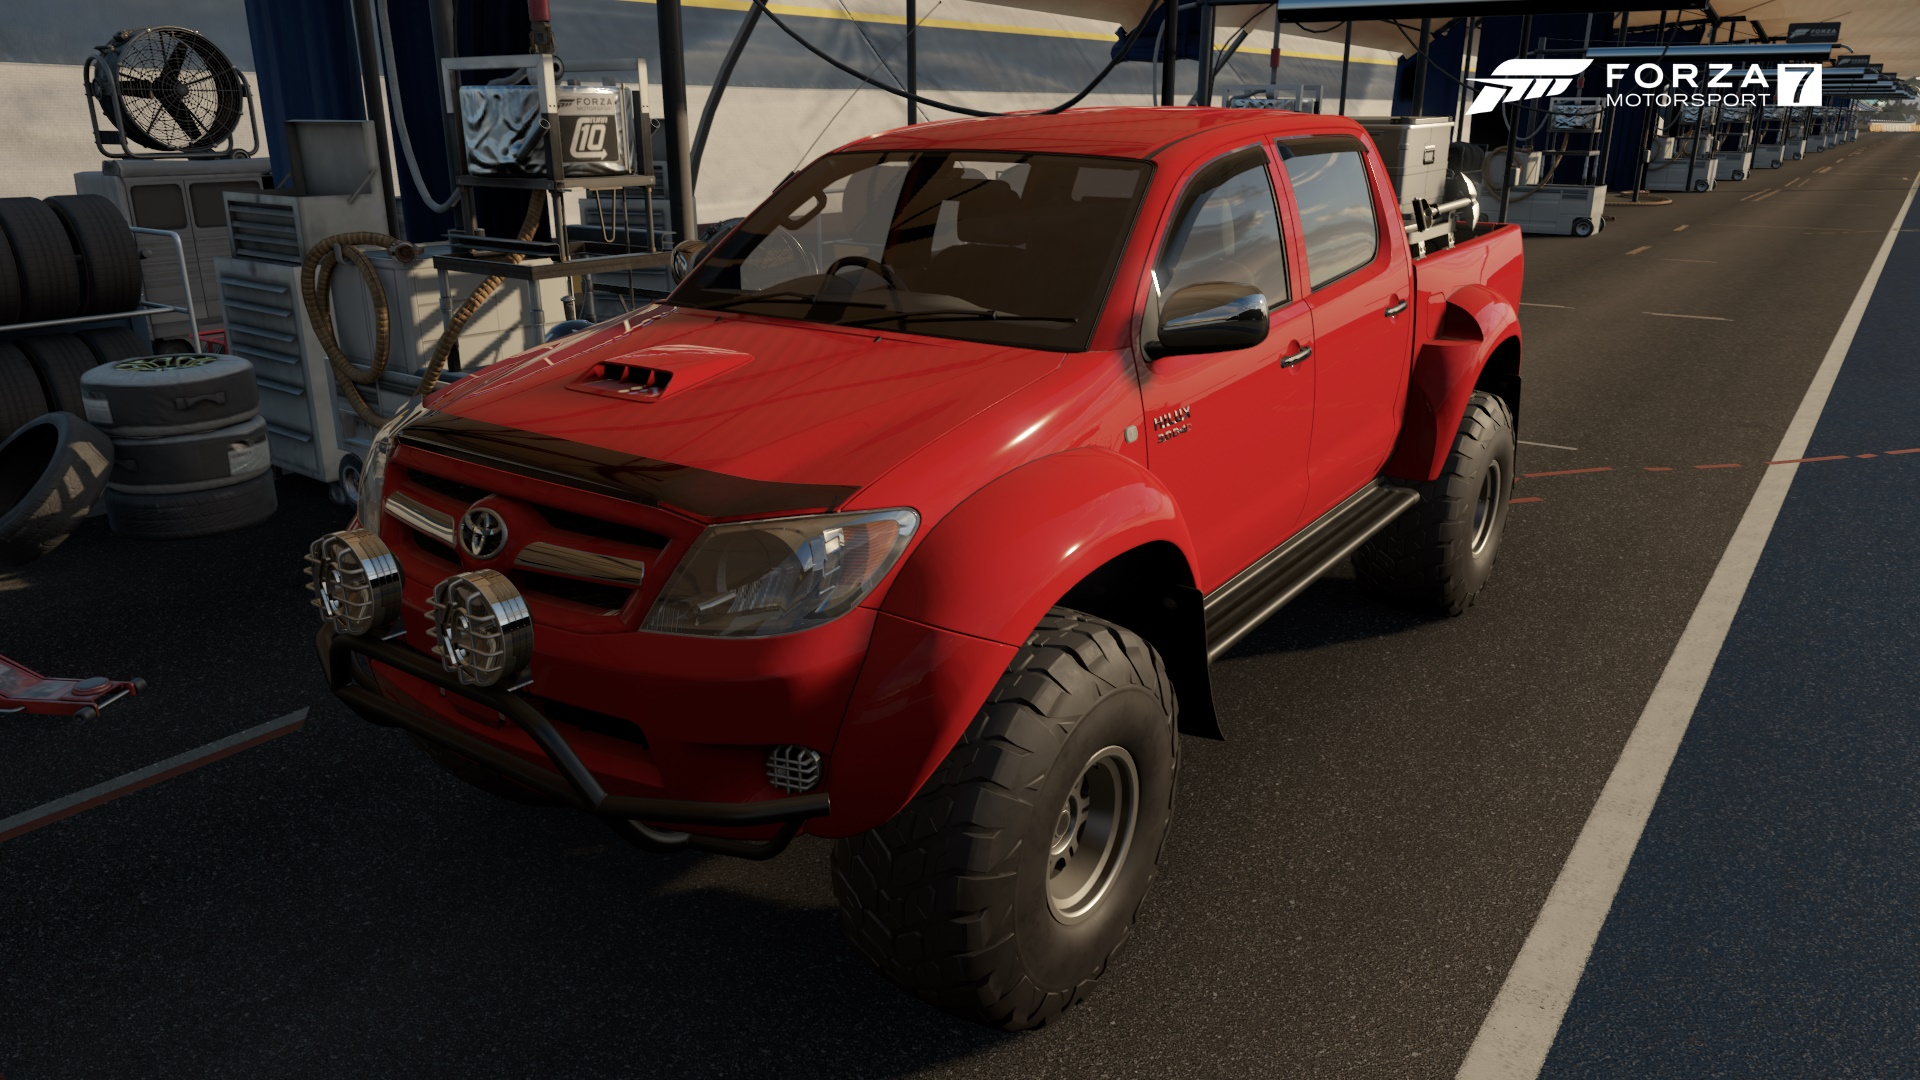 Toyota Hilux Arctic Trucks At38 In Forza Motorsport 7